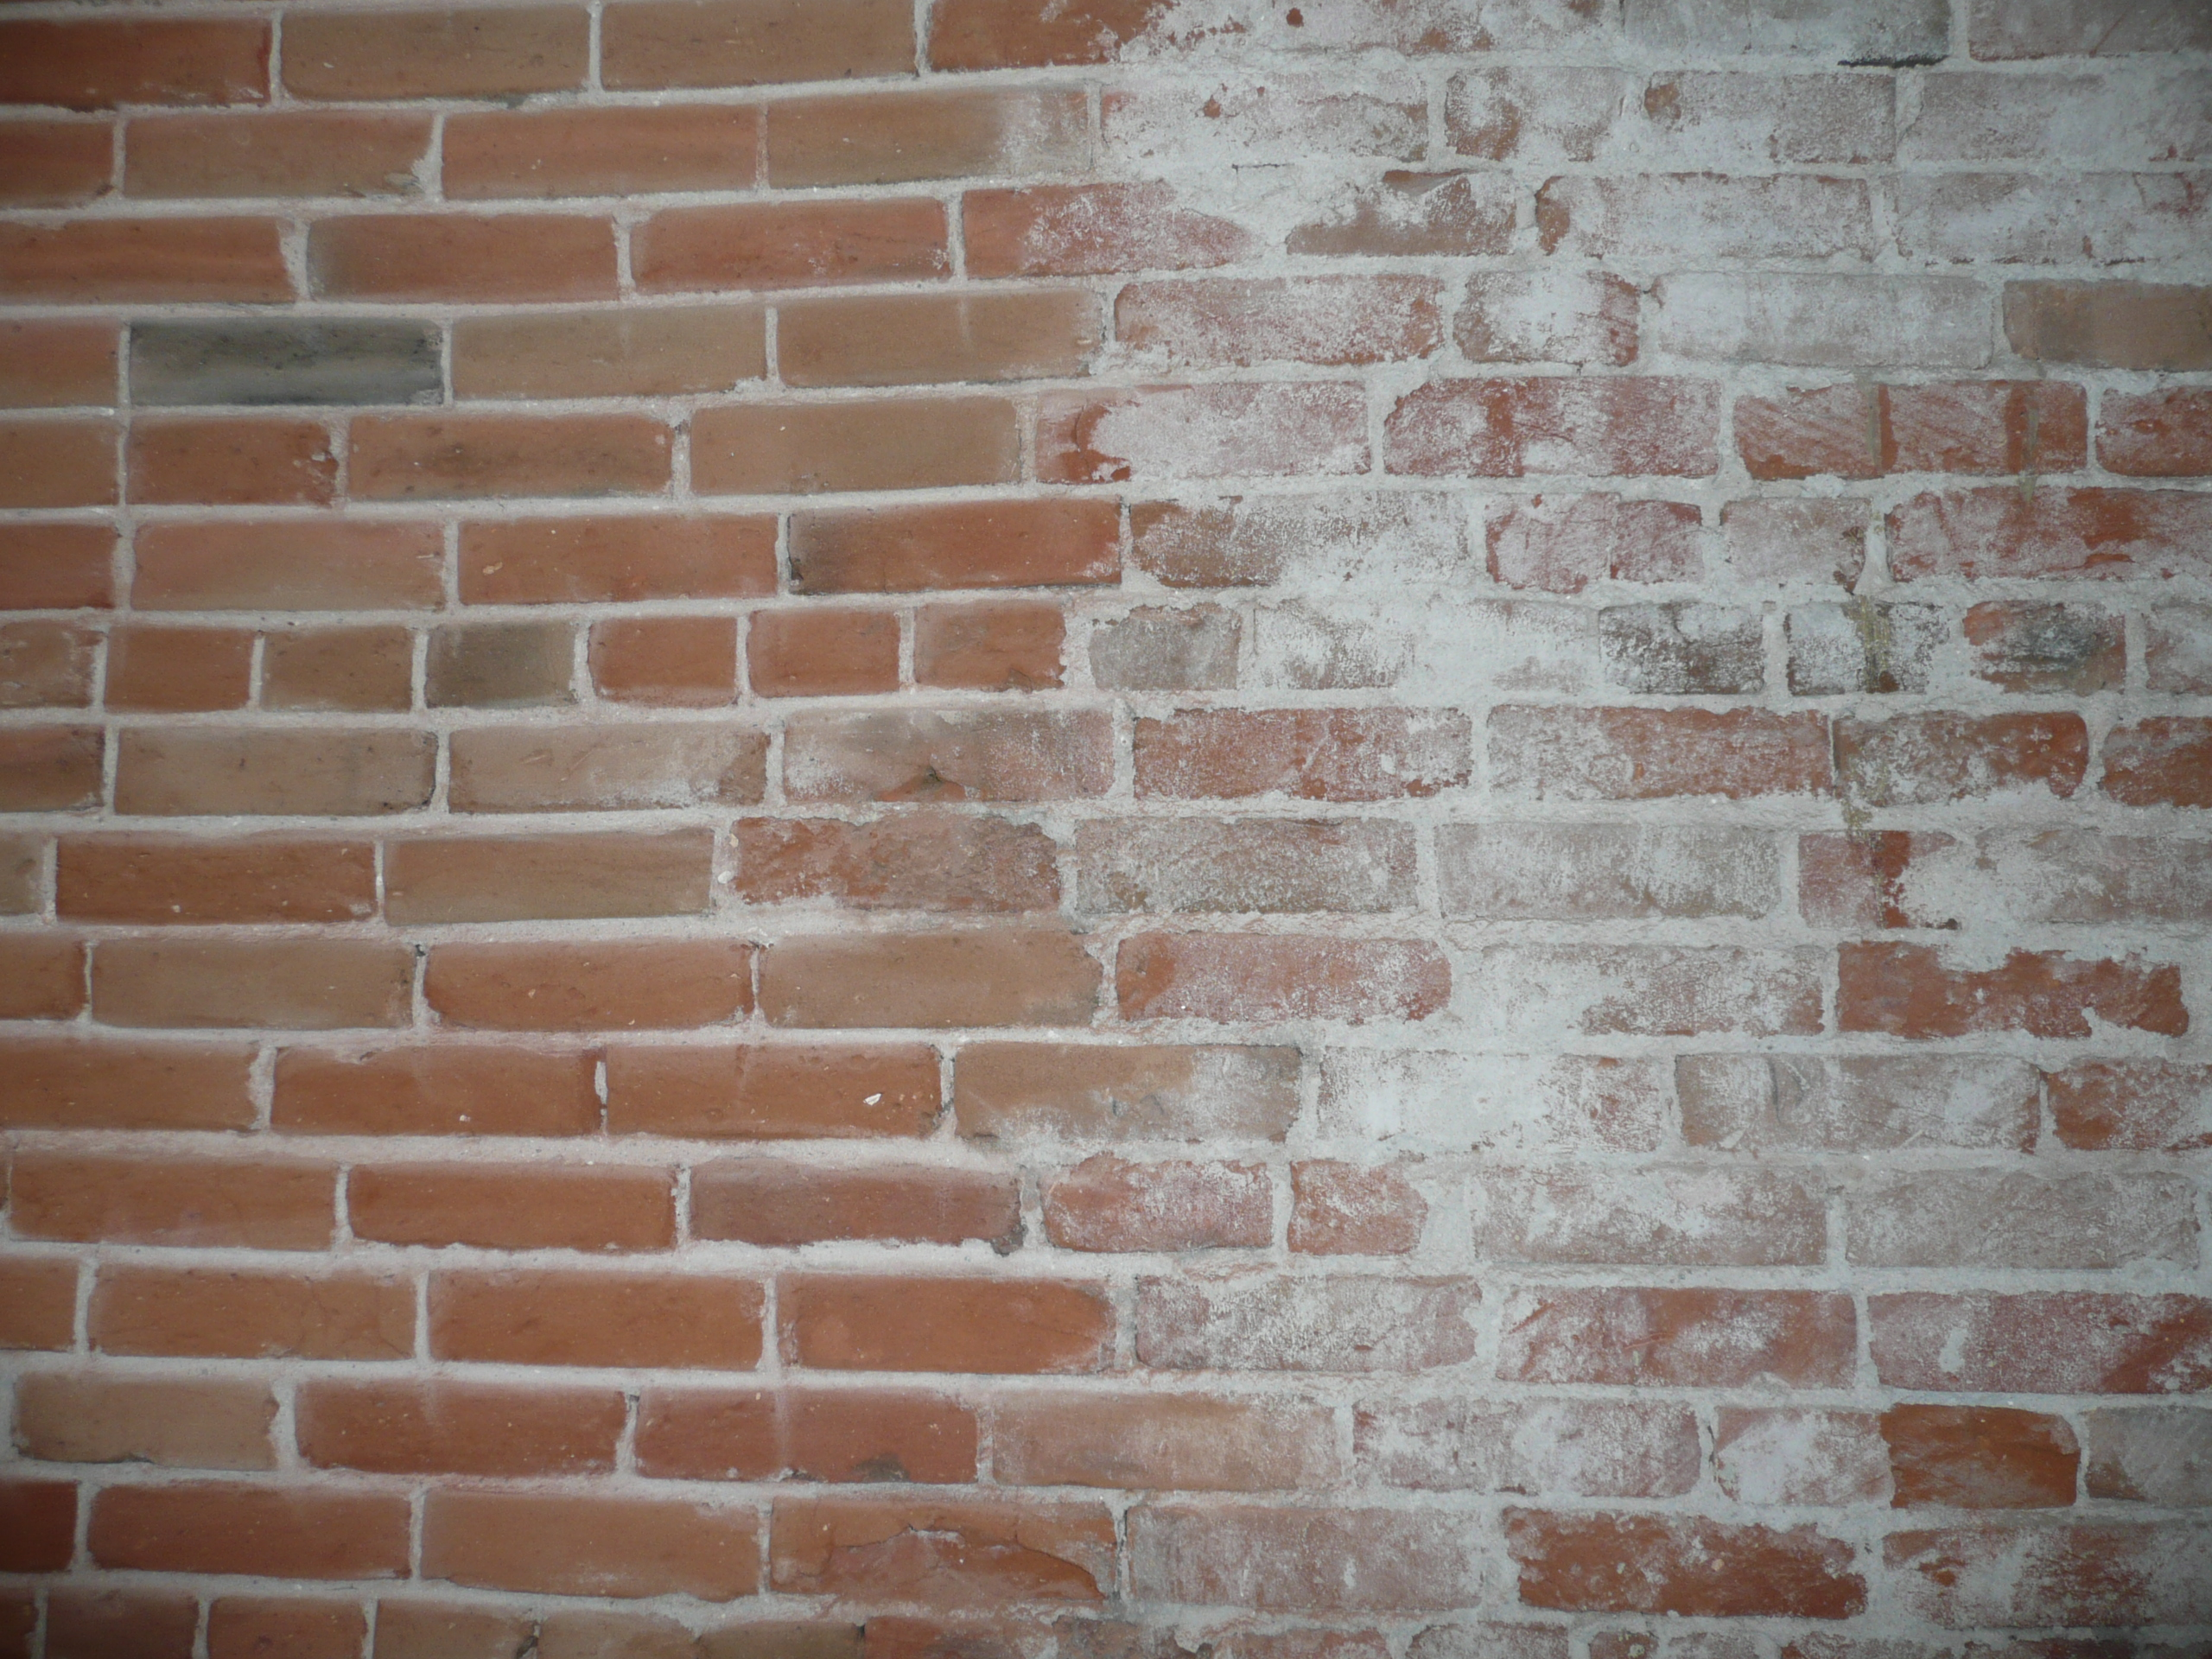 Brick Wallpaper Home Depot httpwwwpic2flycomBrickWallpaperLowe 2560x1920